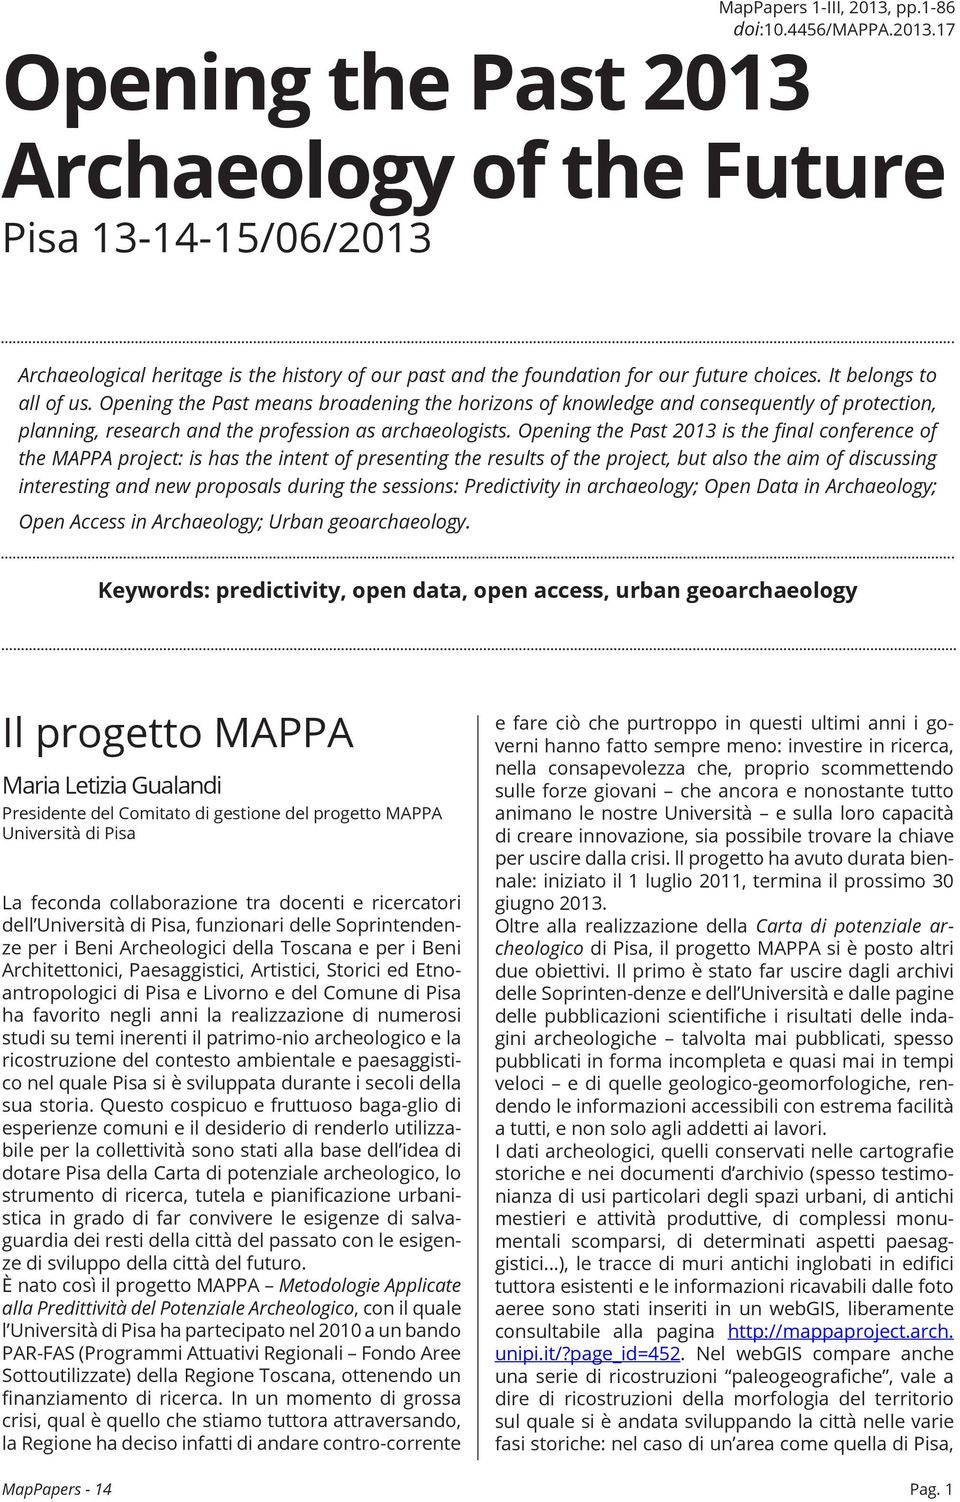 Opening the Past 2013 is the final conference of the MAPPA project: is has the intent of presenting the results of the project, but also the aim of discussing interesting and new proposals during the